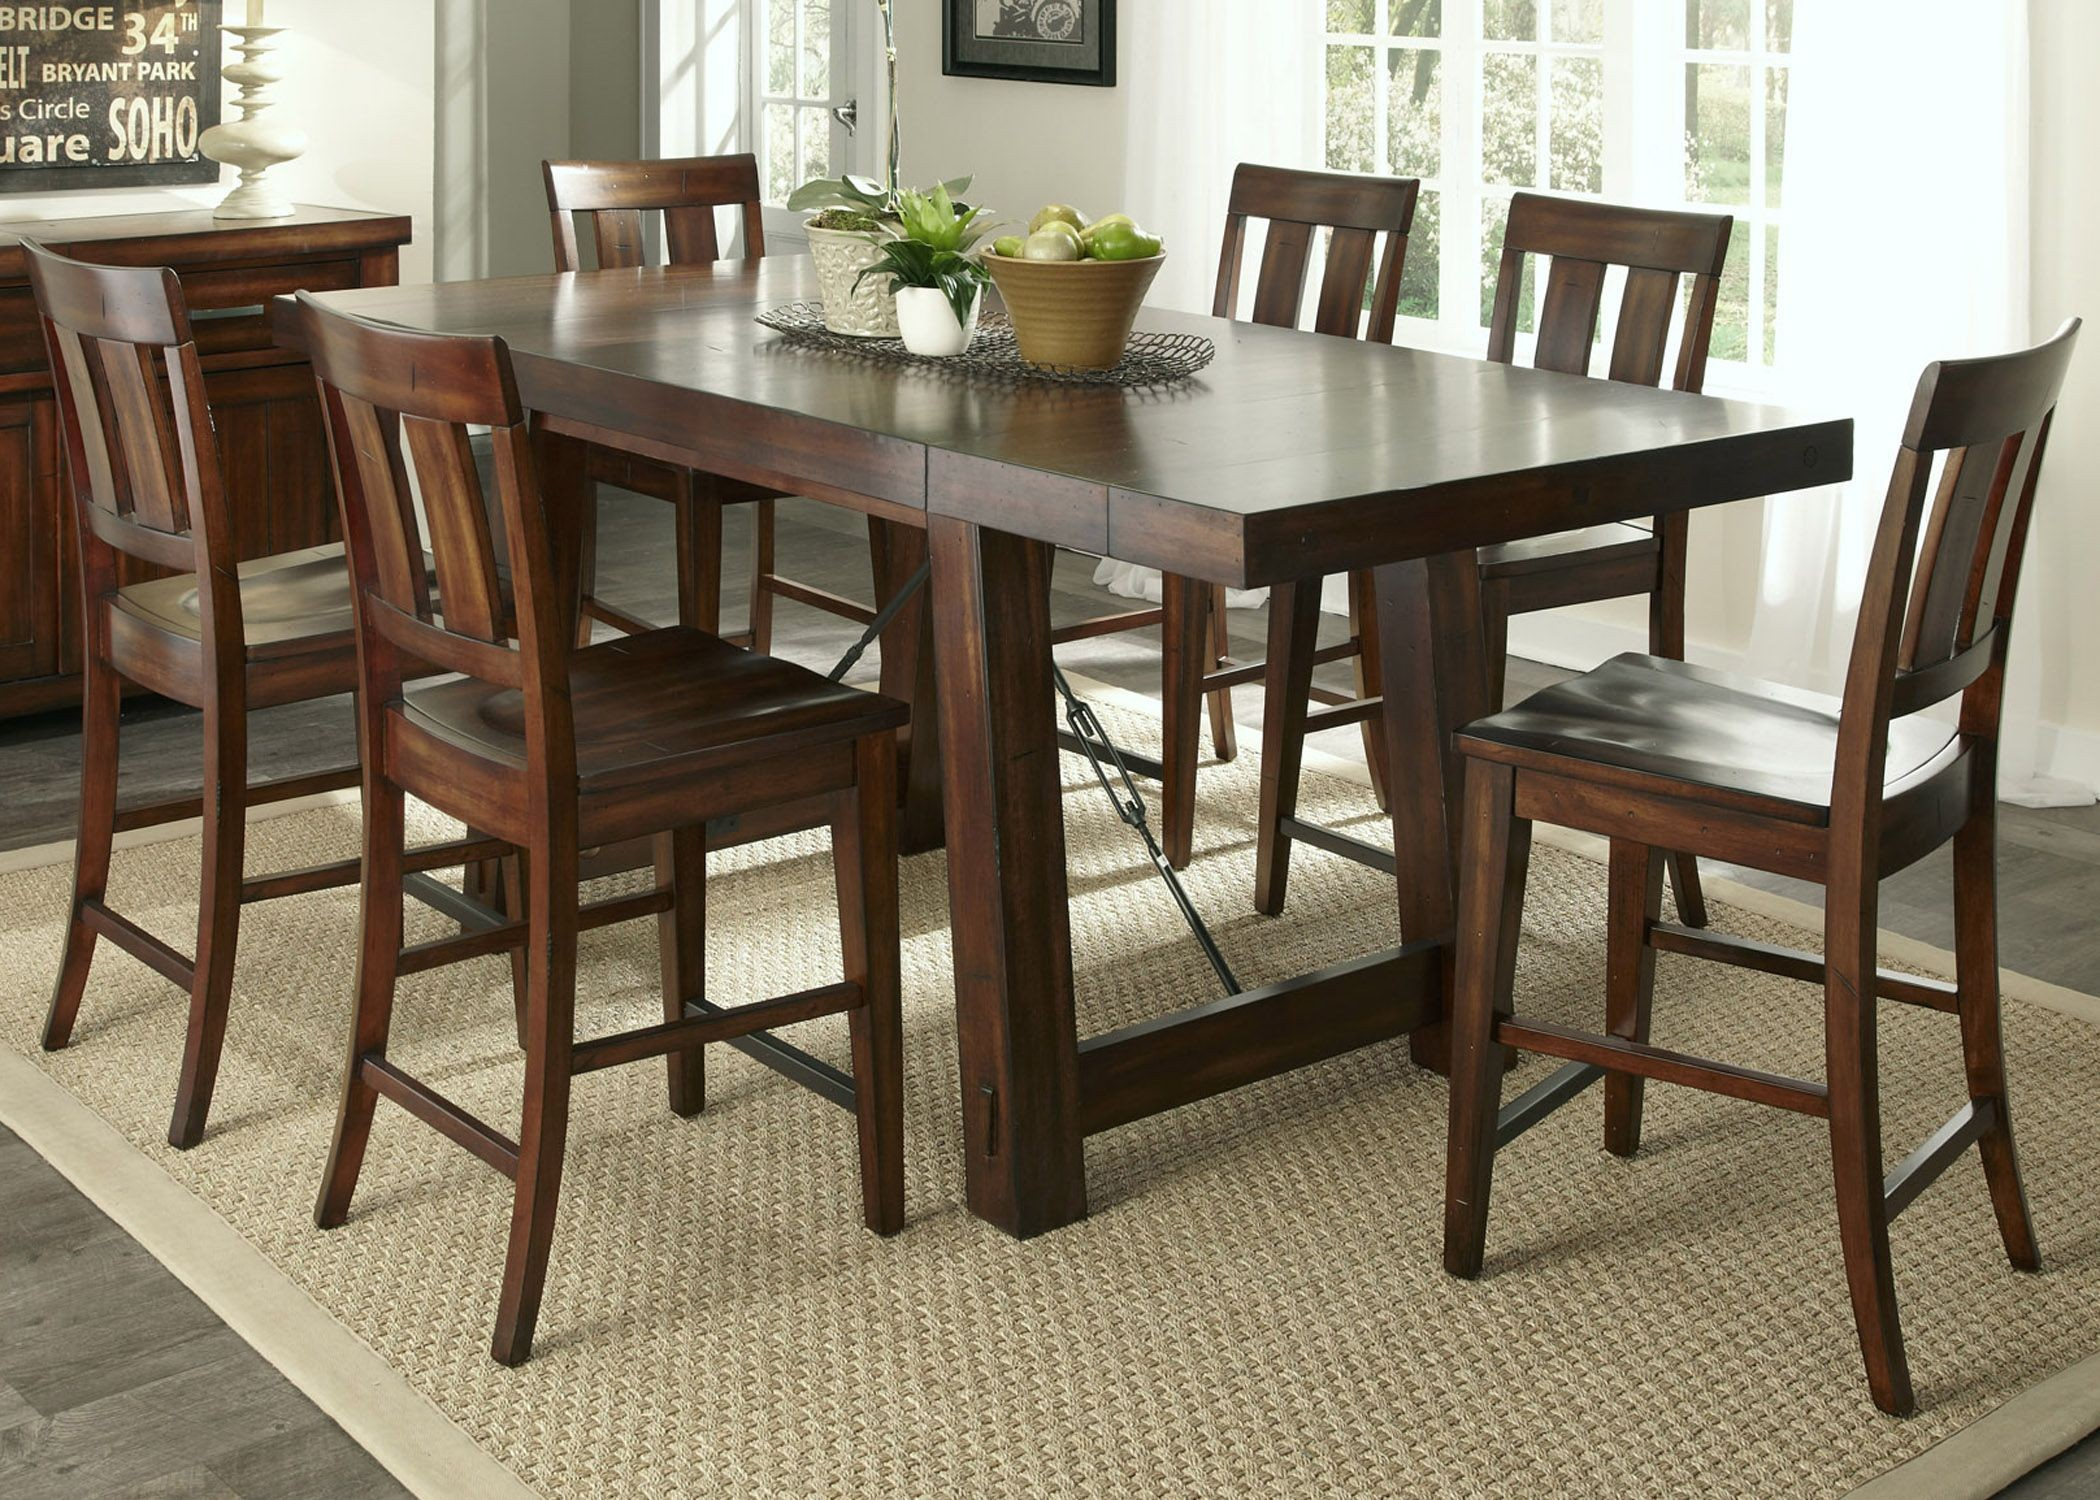 Tahoe Mahogany Stain Gathering Dining Room Set From